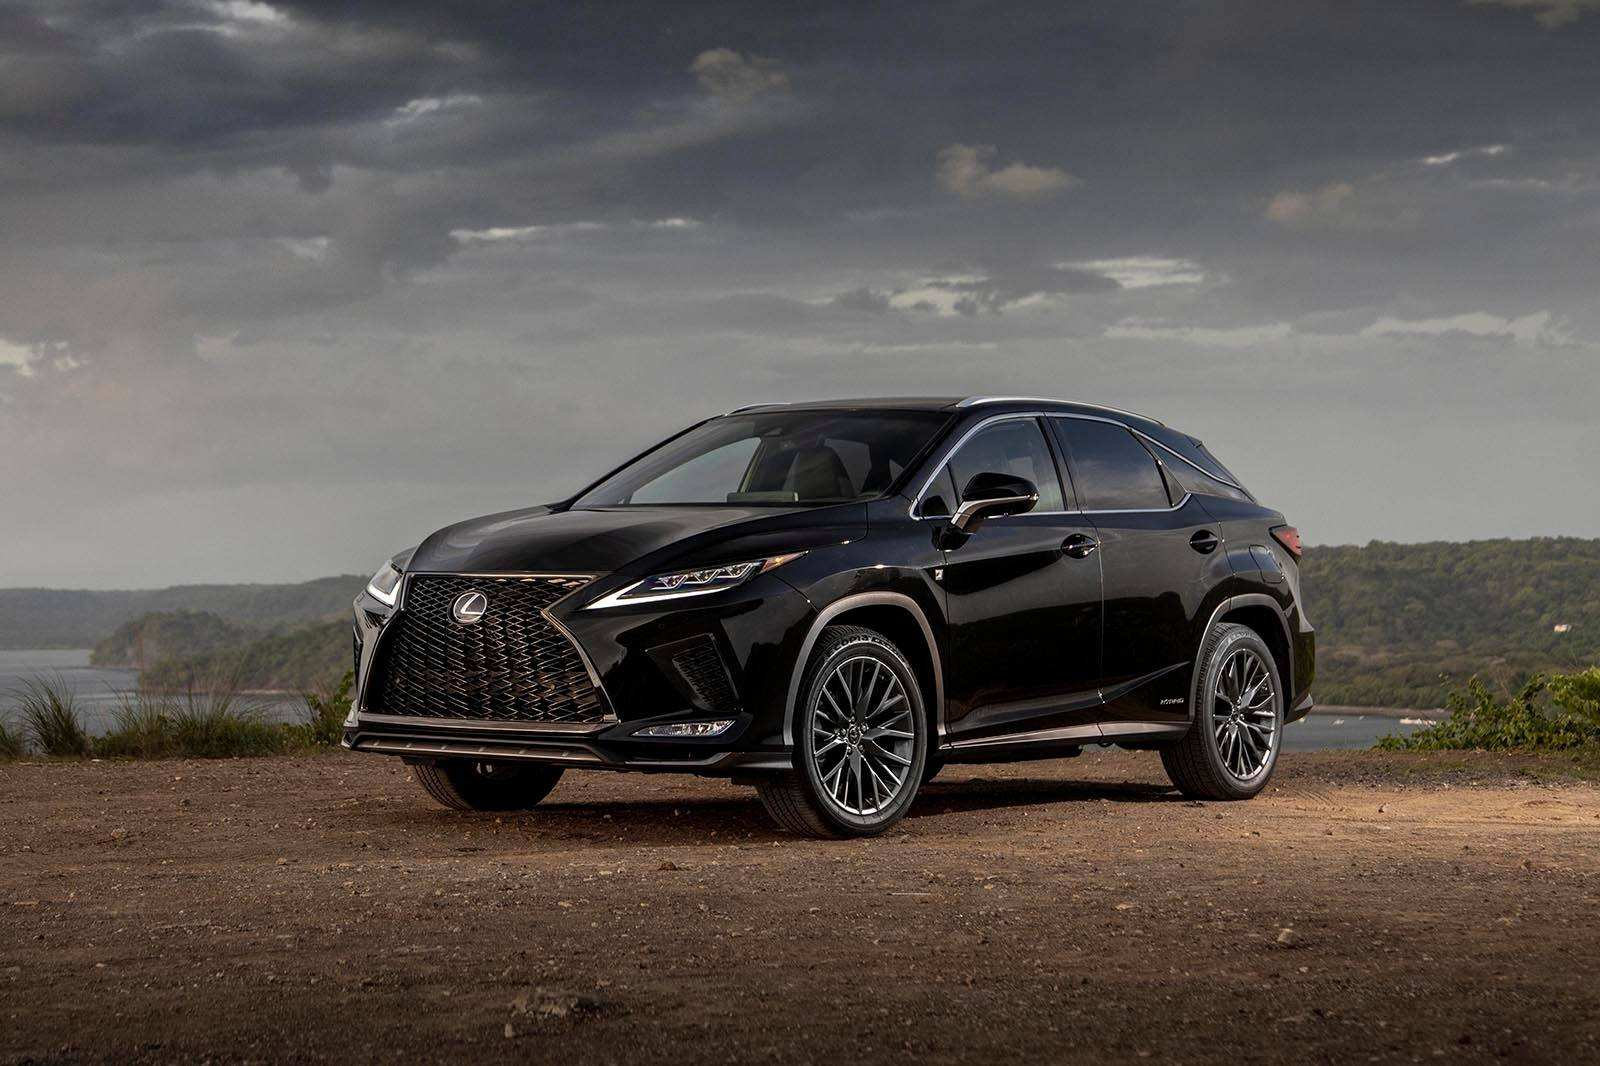 82 Gallery of Lexus Rx 450H 2020 Overview for Lexus Rx 450H 2020